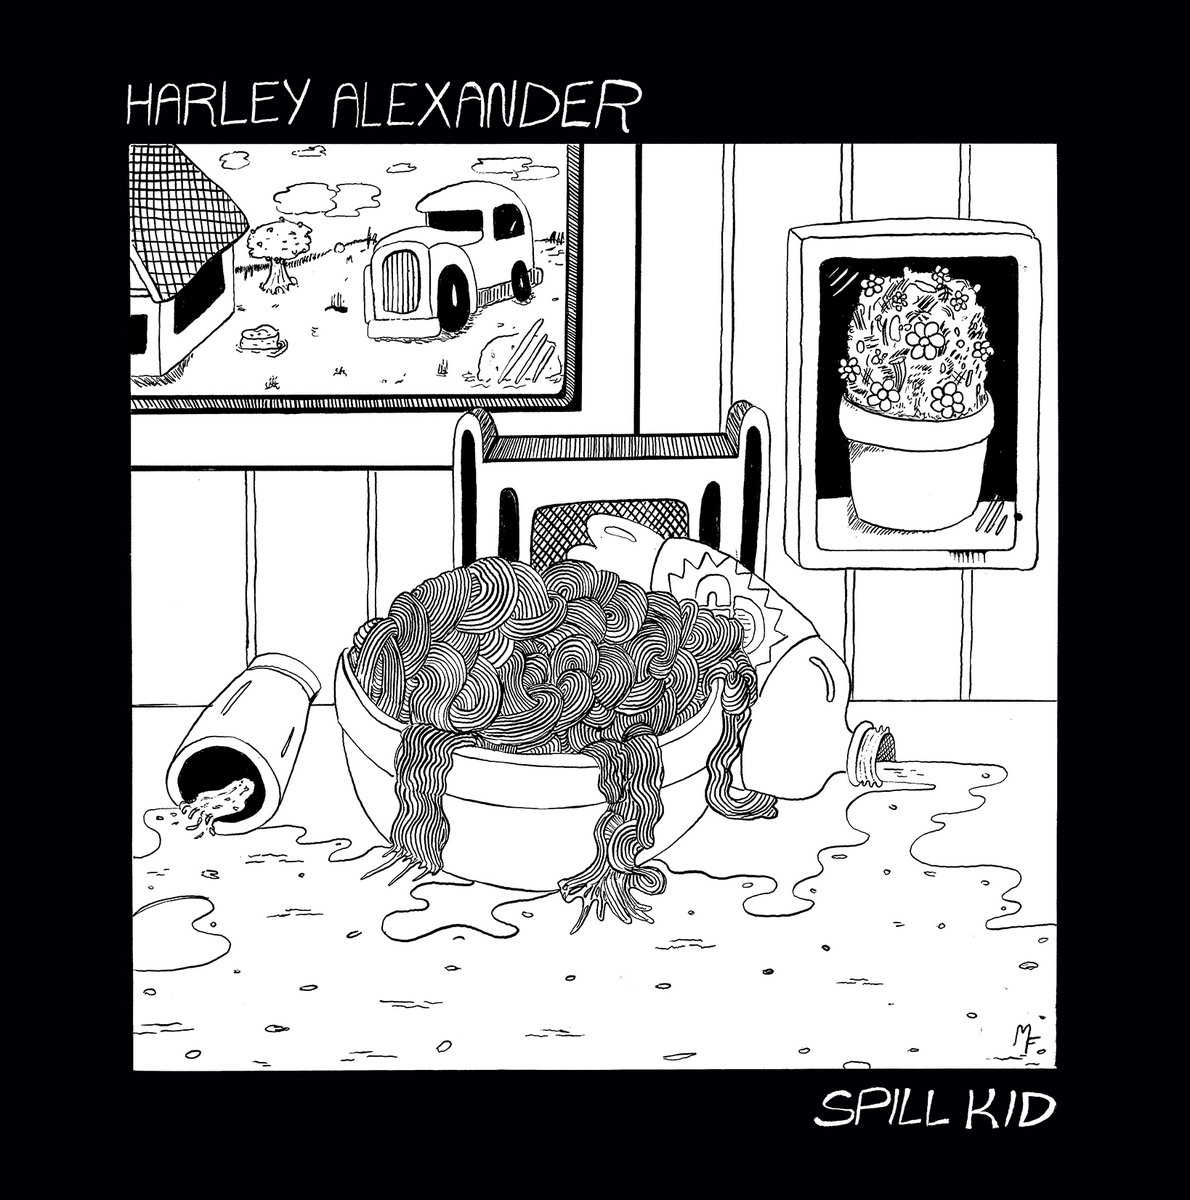 From Spill Kid By Harley Alexander